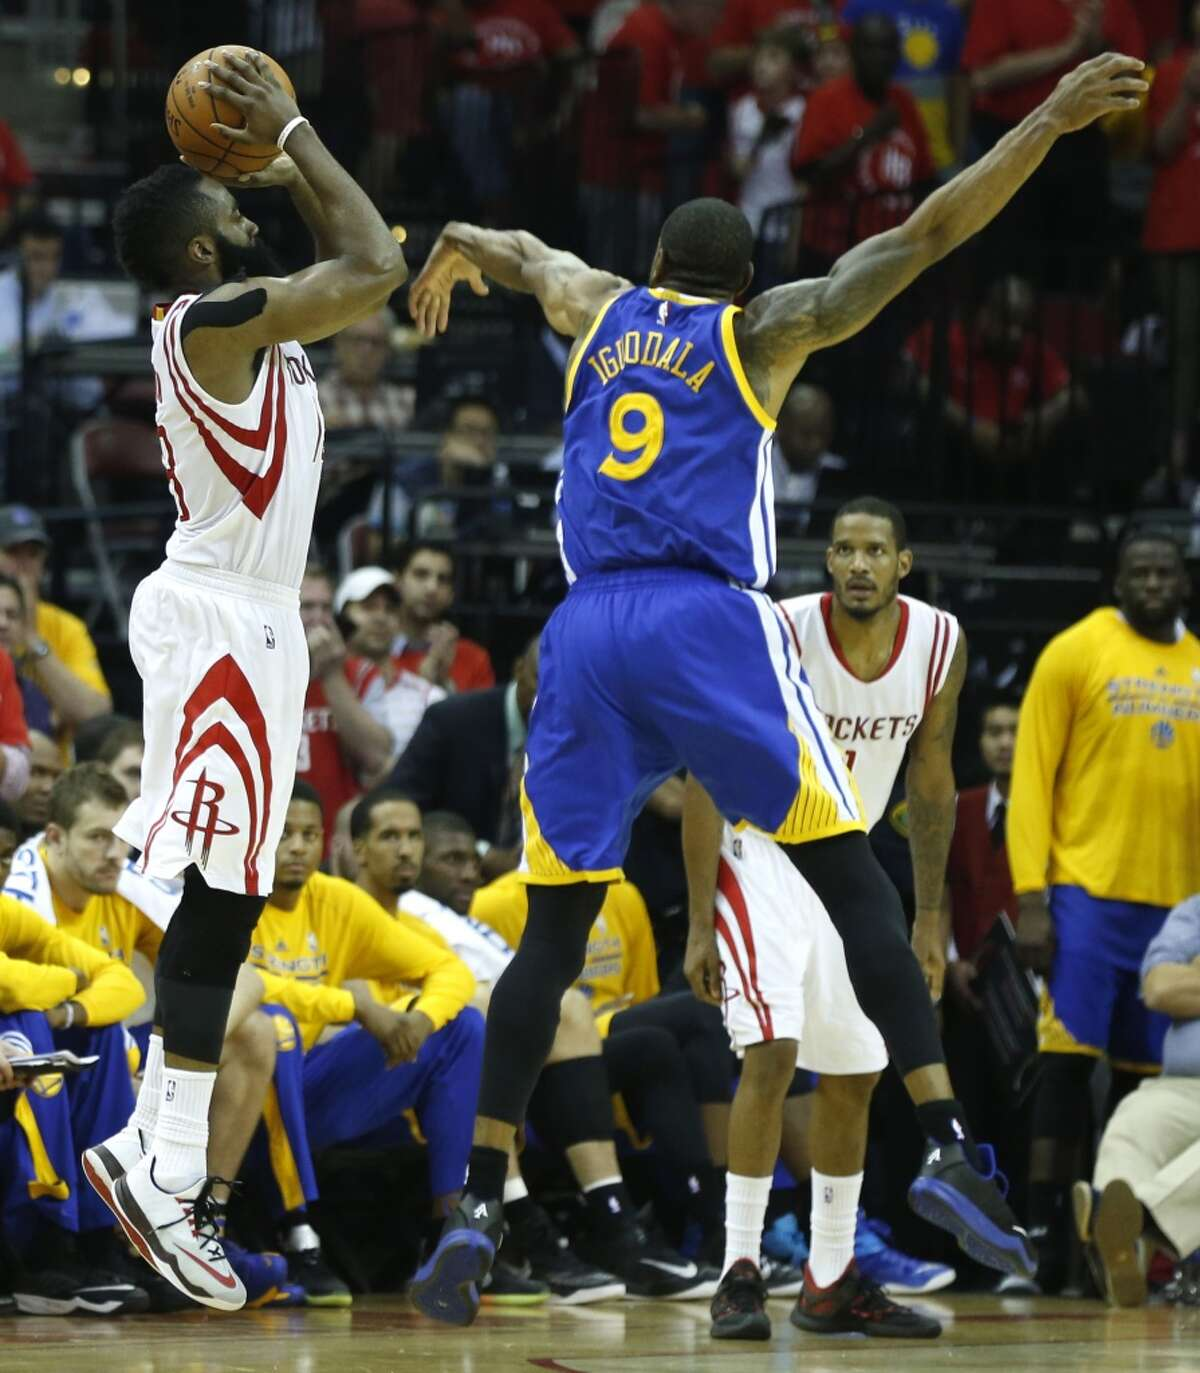 May 25, 2015: Rockets 128, Warriors 115By the numbers: 45 points, 7 of 11 3-pointers, 12 of 13 free throws, nine rebounds. Bearding: After two tough losses in Oakland in which Harden lost the ball in the closing seconds of Game 1 and was held to 17 points in Game 2 of the Western Conference Finals, Harden helped lead a phenomenal first quarter in a start-to-finish win that kept the Rockets' postseason hopes alive. Beardspeak: